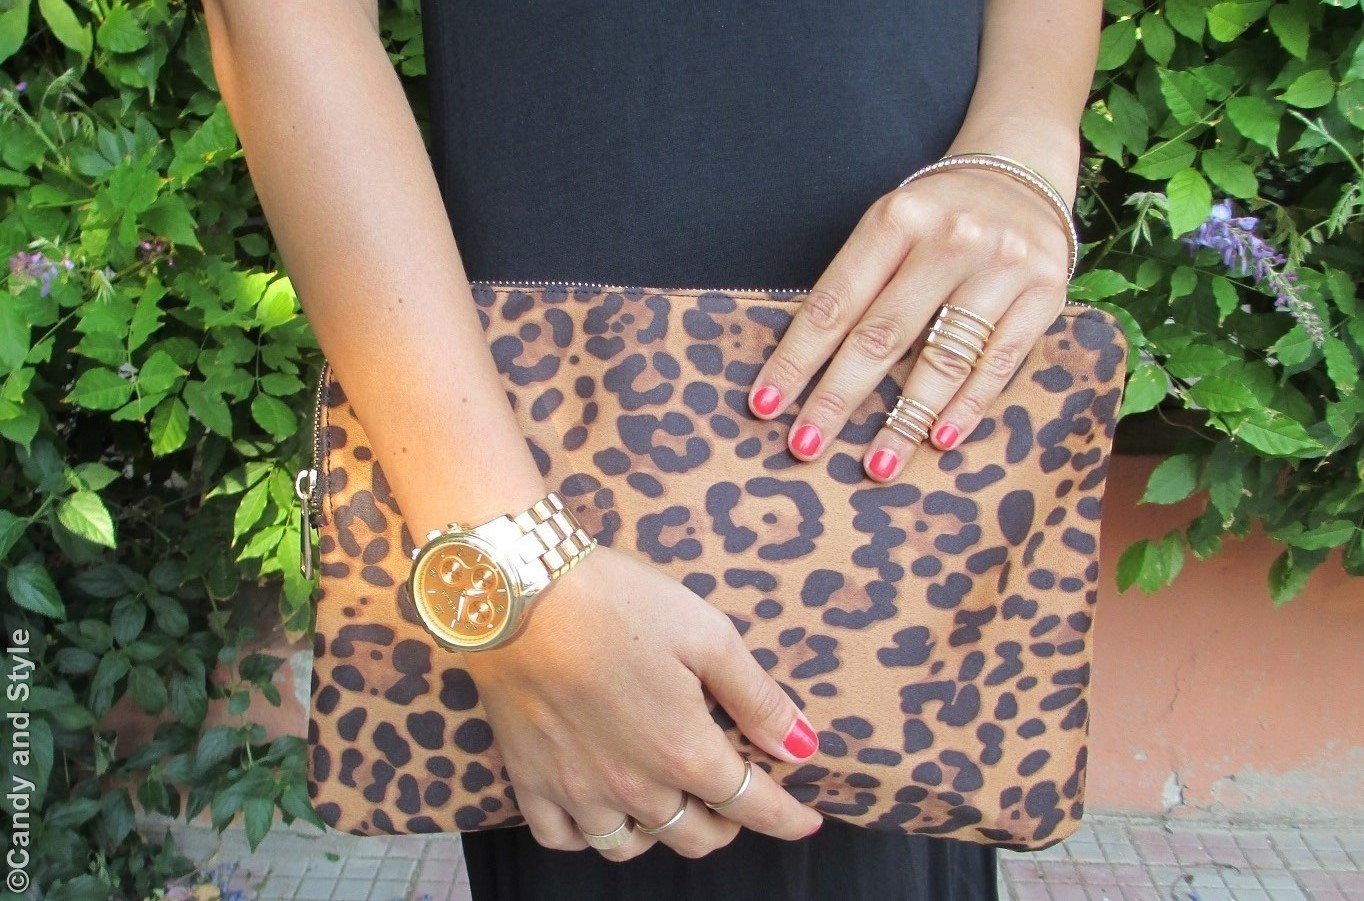 Leopard Clutch, Accessories - Details